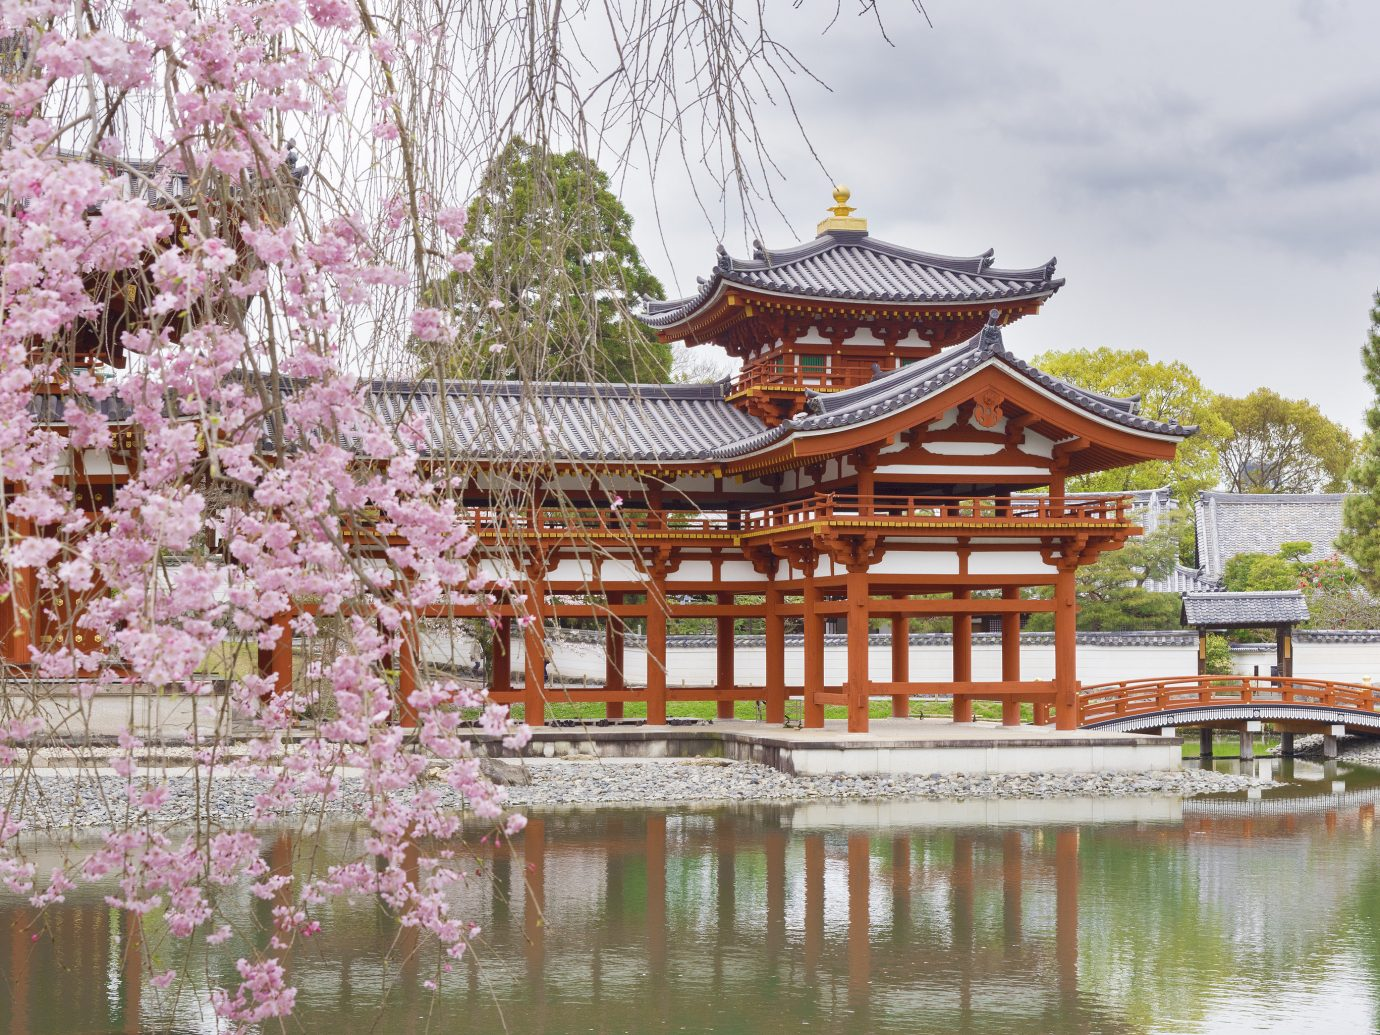 Japan Trip Ideas chinese architecture japanese architecture plant flower shinto shrine pagoda tree reflection cherry blossom outdoor structure temple pavilion shrine spring pond gazebo leisure